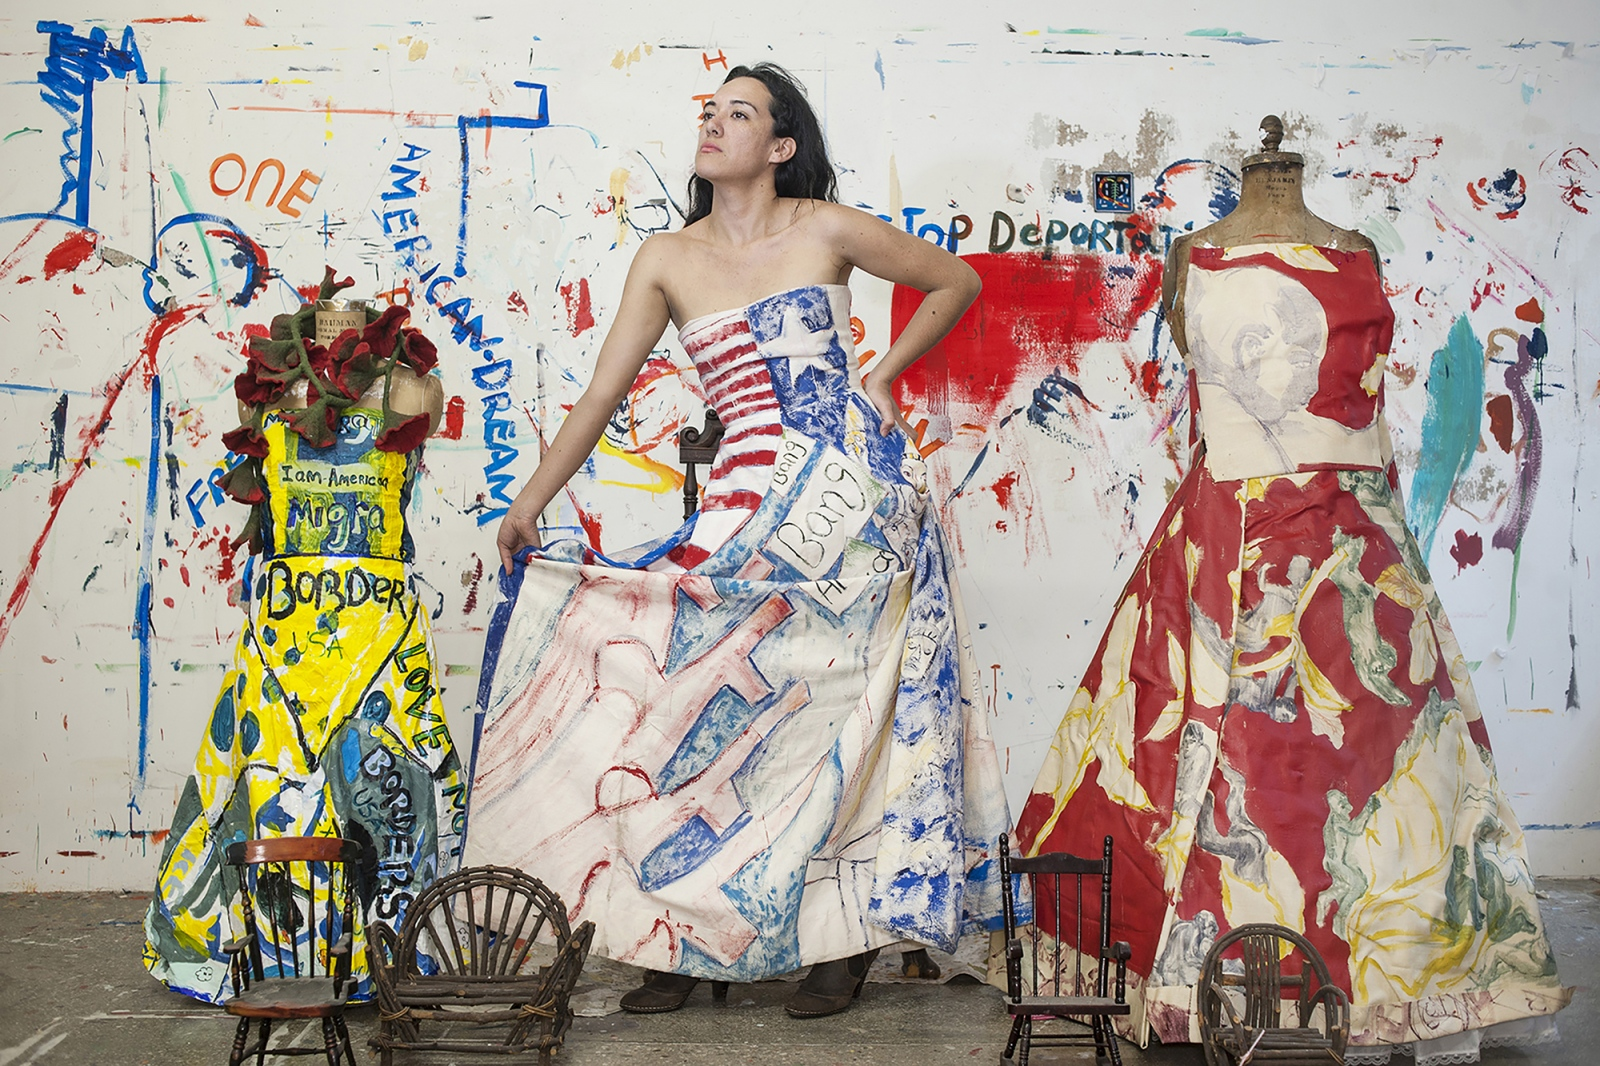 """Maria De Los Angeles is a Mexican American painter recognized for her painted dresses, which are wearable portraits of human displacement and the immigrant experience. Educated at Pratt and Yale, she is an undocumented immigrant smuggled across the border to California when she was eleven. She could not vote in this election due to her DACA status but said she would have voted for Bernie Sanders. She got her DACA status renewed for two more years in July. She has been making dresses since around February 2016, the beginning of the election campaign, interested in the confrontational aspect of wearing stereotypes on one's body. She uses acrylics, painting abstract scenes of migration to look like landscapes, or at other times writing overt commentary on deportation. """"I wanted to create a more nuanced portrait of immigrants,"""" she said. """"And also place myself in my work."""""""